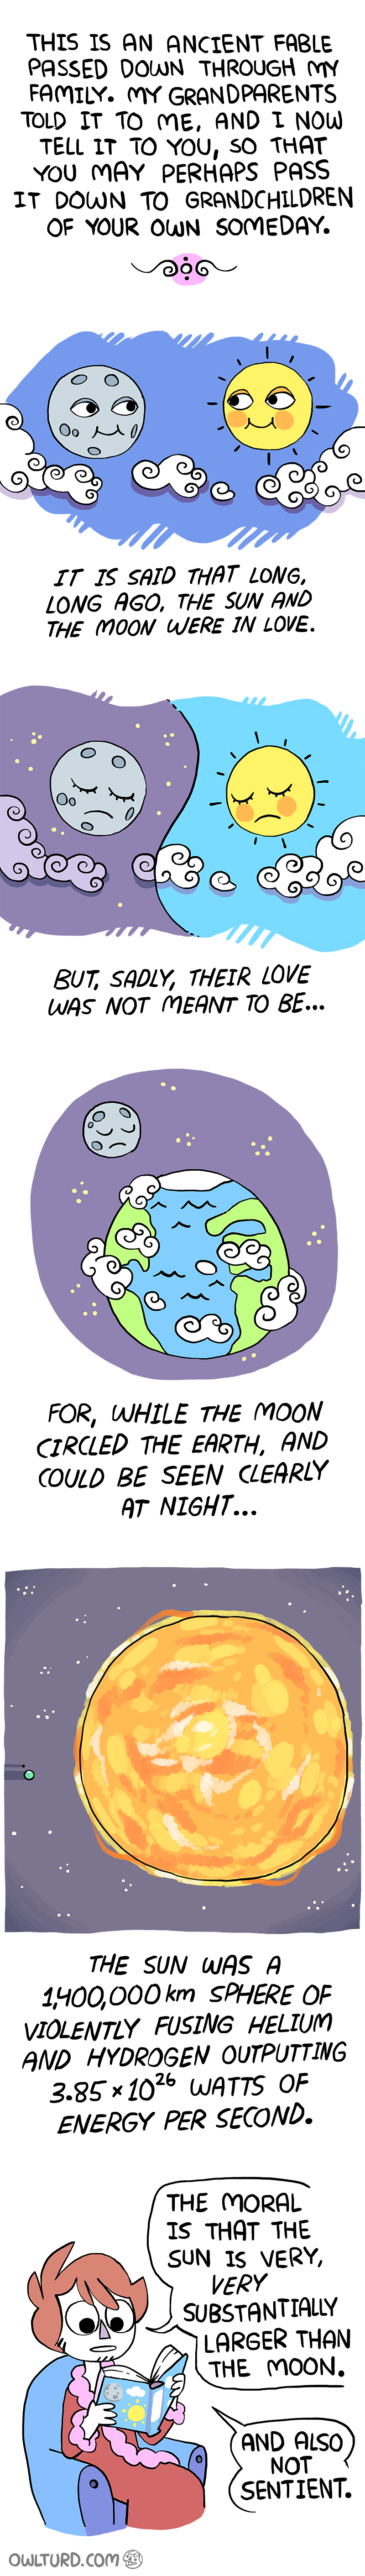 funny-fable-web-comics-sun-moon-space